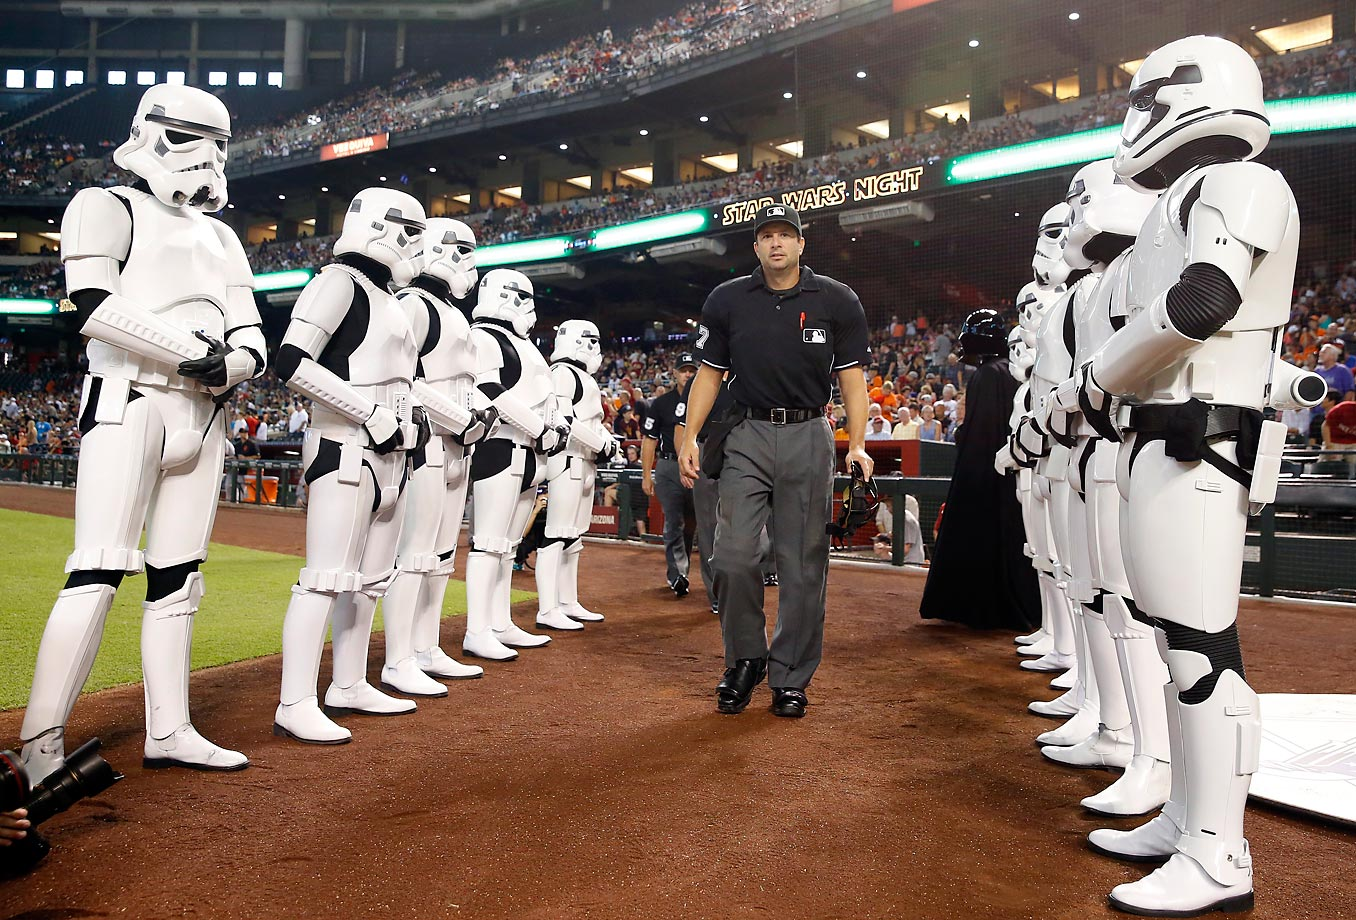 MLB umpire Jim Reynolds walks out to the field before a baseball game between the Arizona Diamondbacks and the San Francisco Giants on Star Wars night.